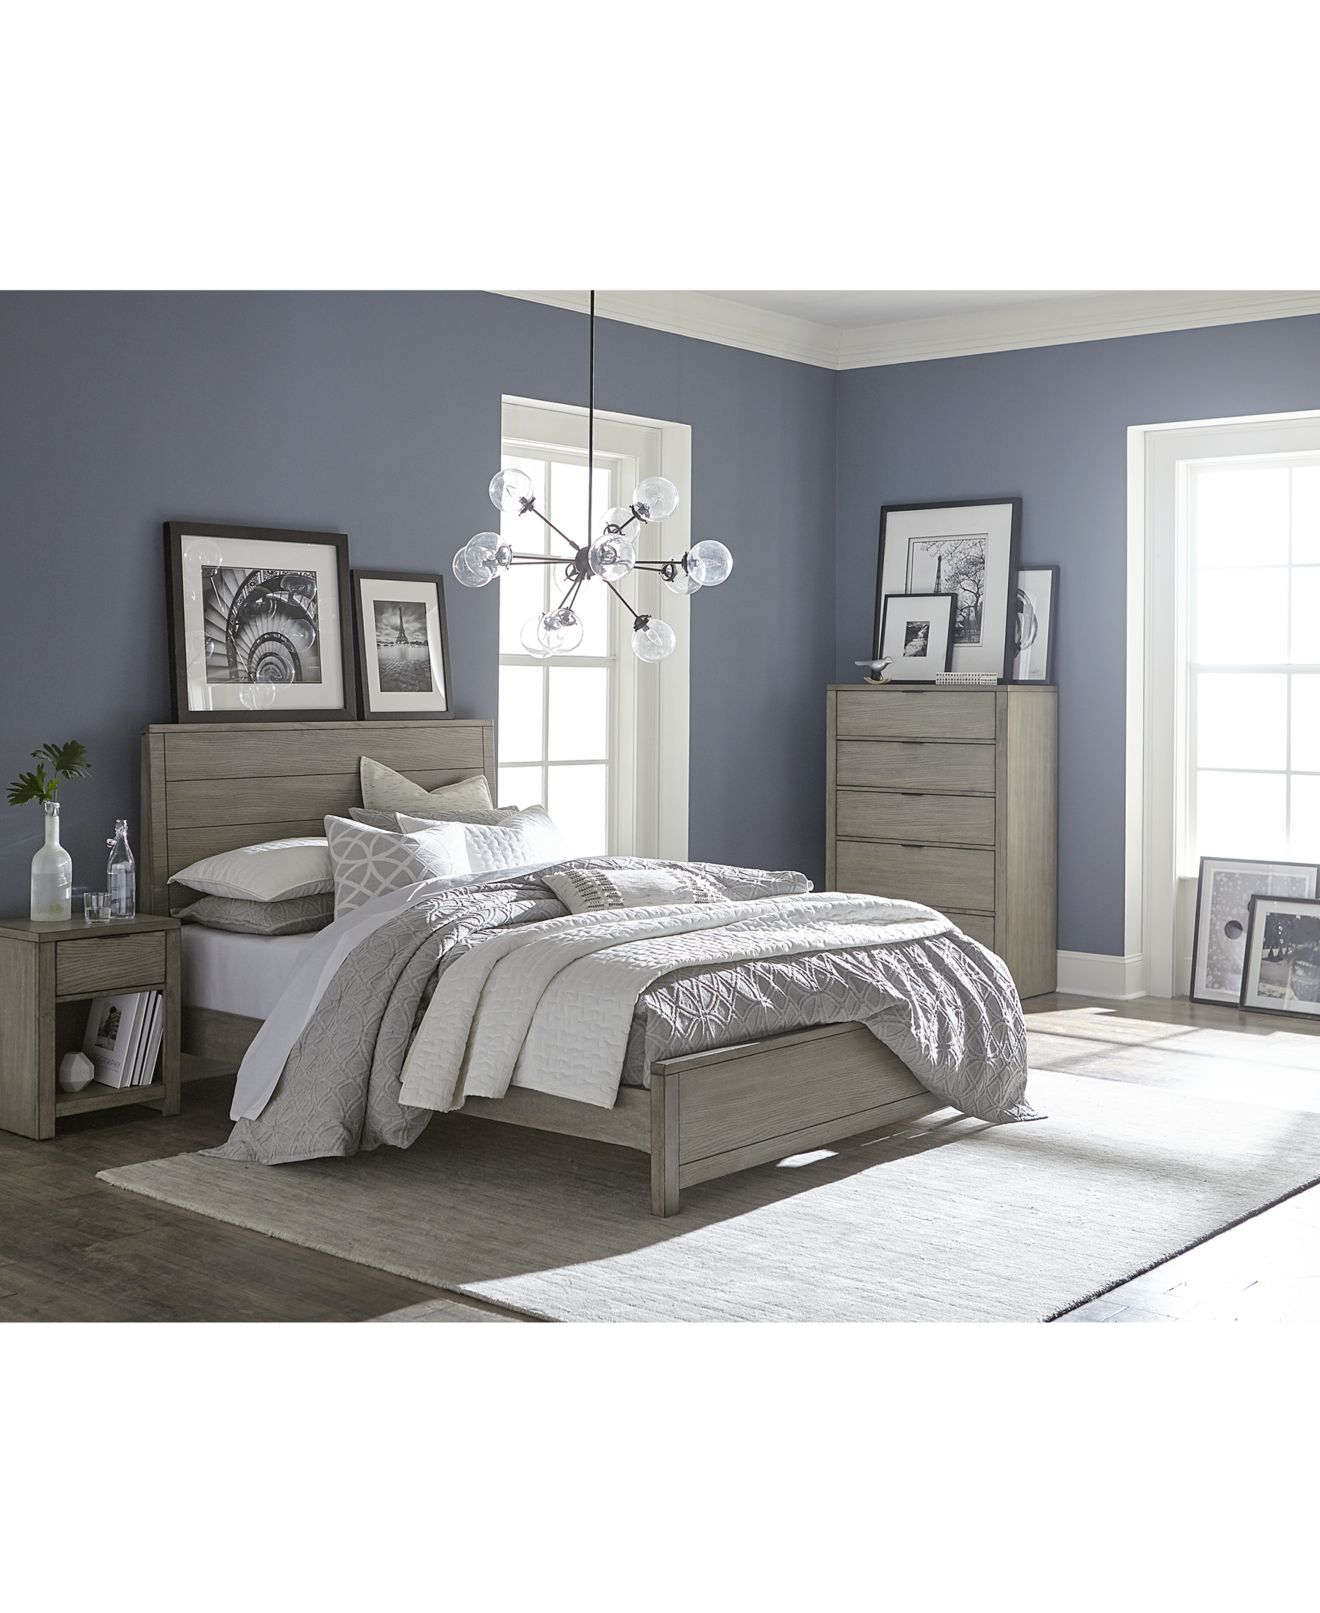 grey bedroom furniture Shop for and Buy grey bedroom furniture